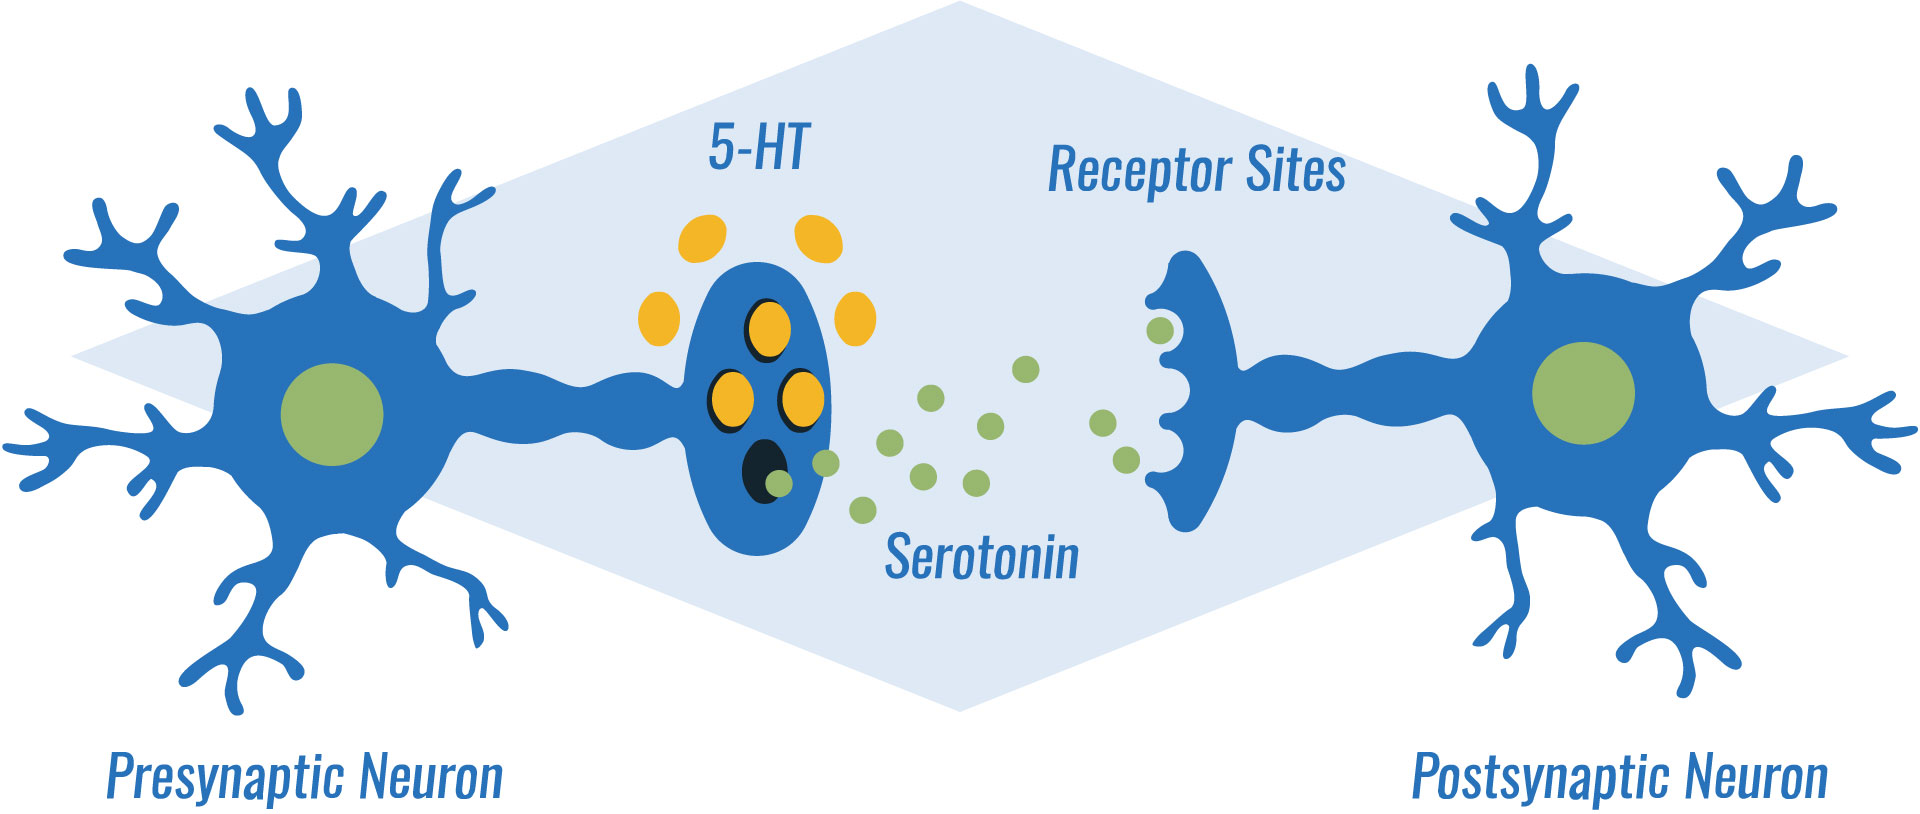 how anti-anxiety medications work: SSRIs block the reabsorption of serotonin in the brain, boosting your mood